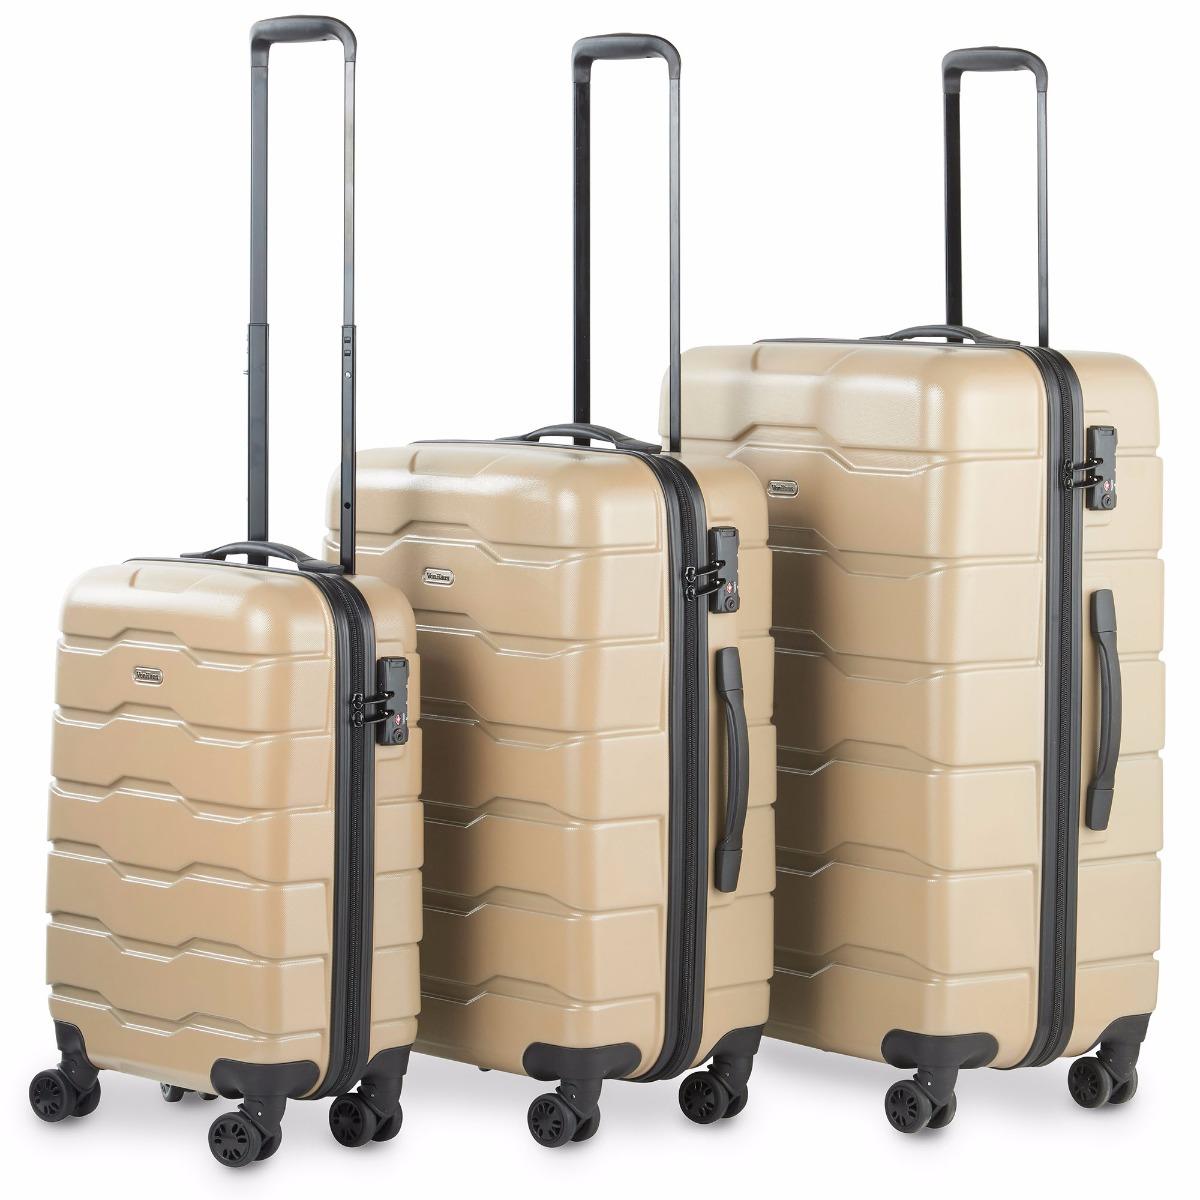 VonHaus Premium Champagne 3 Piece Lightweight Travel Luggage Set - Hard Shell Suitcase with 4 Spinner Wheels, TSA Integrated Lock, Extendable Handle - Small, Medium and Large